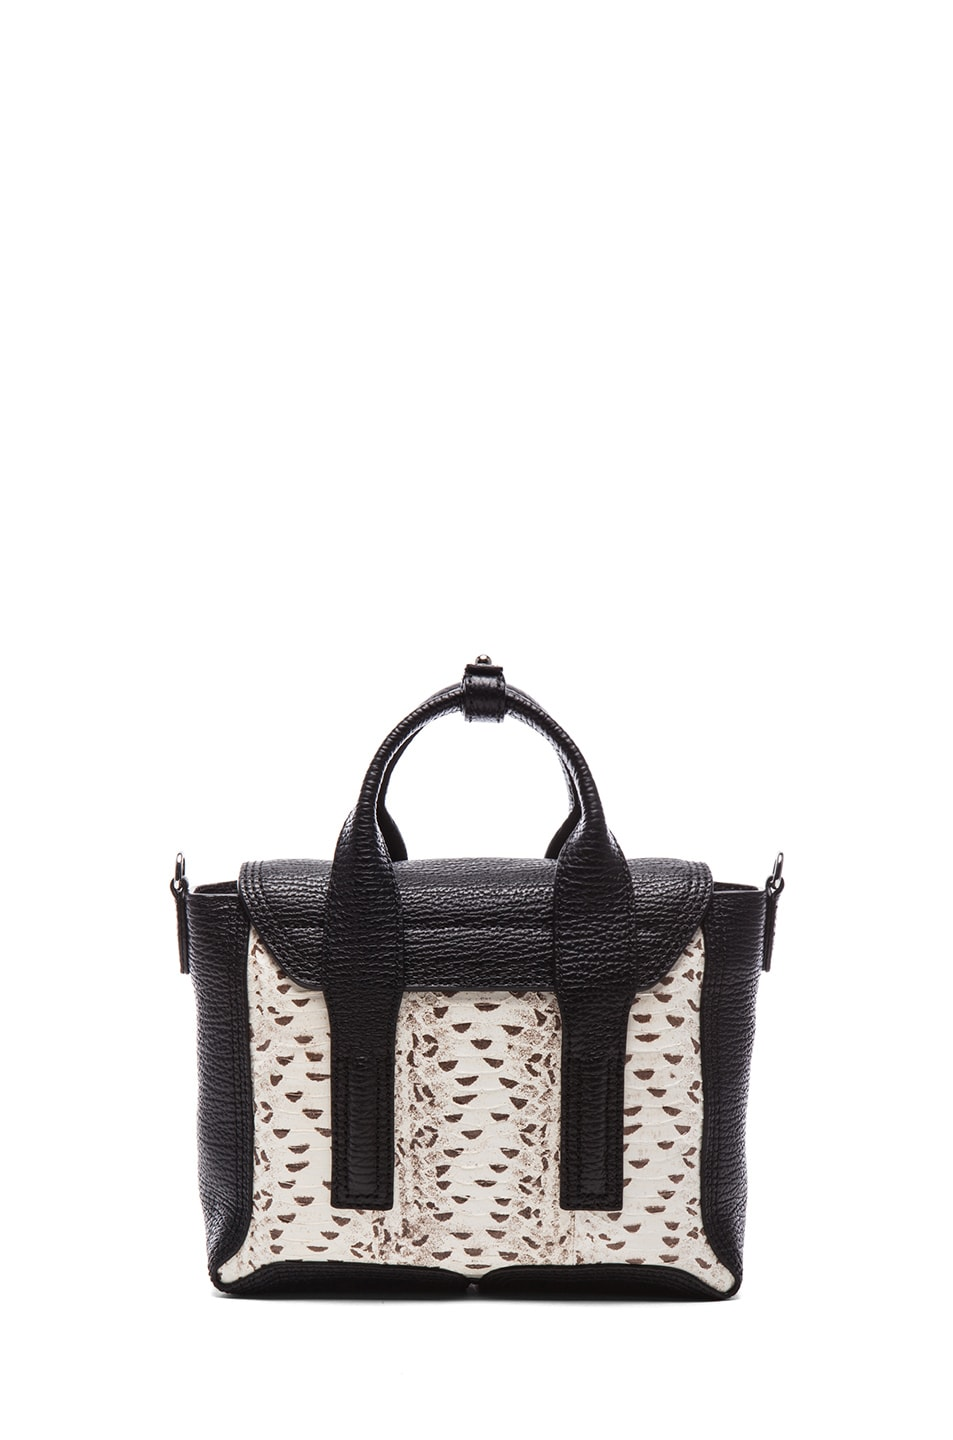 Image 2 of 3.1 phillip lim EXCLUSIVE Mini Pashli Satchel in White & Black